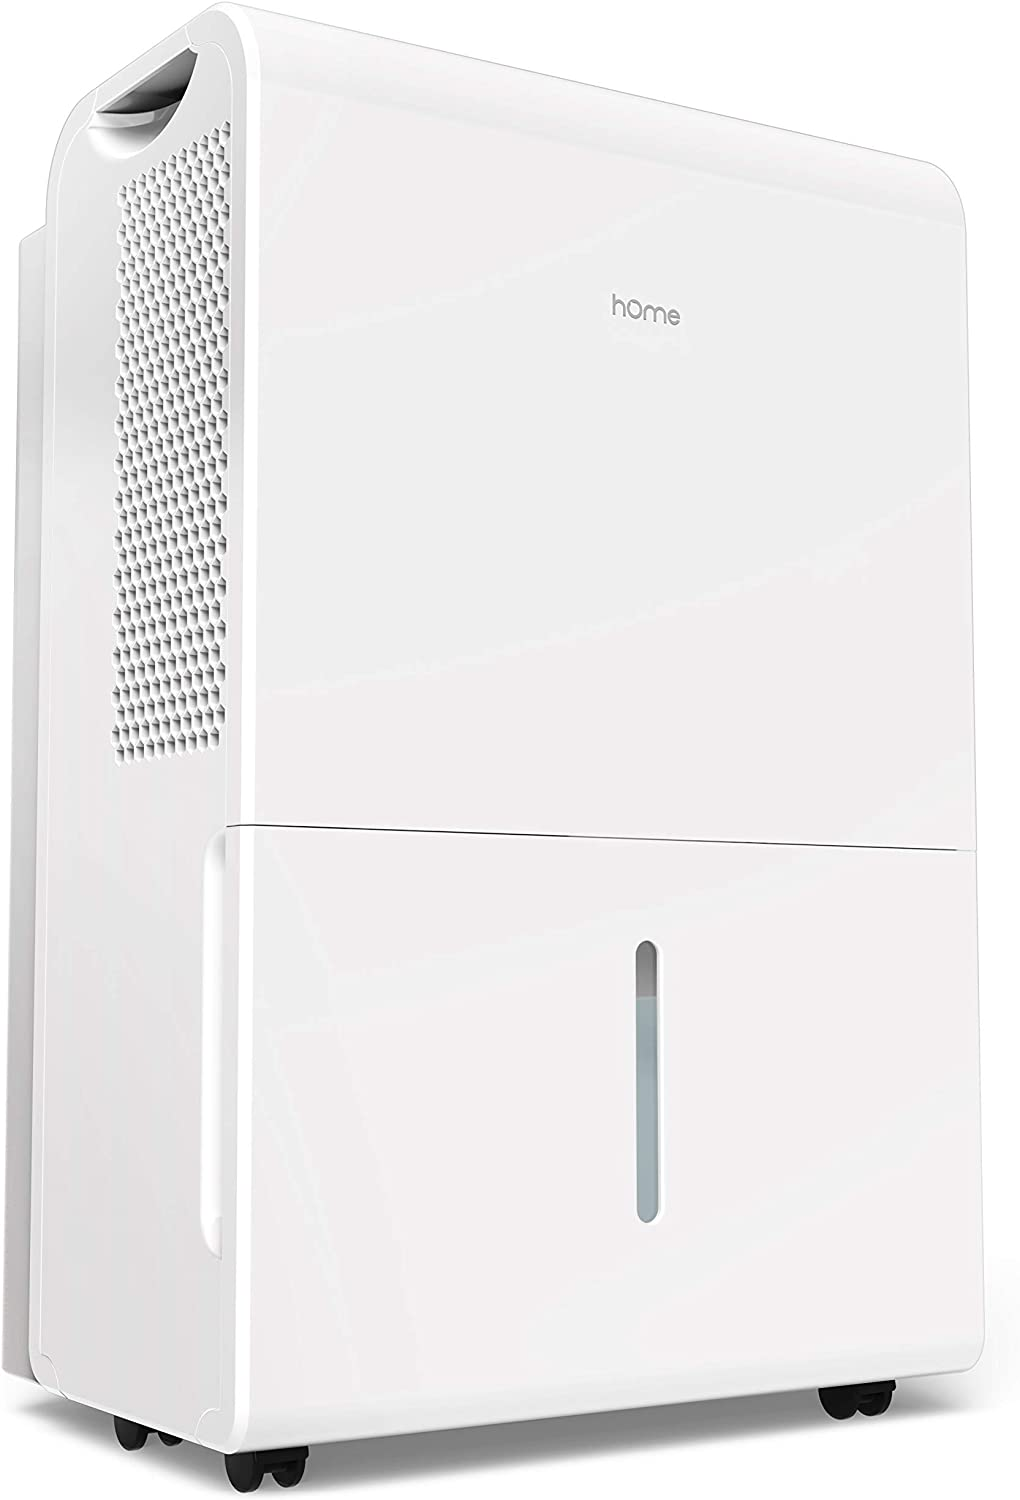 10 Best Dehumidifier For Apartment [Guide -2021] 11